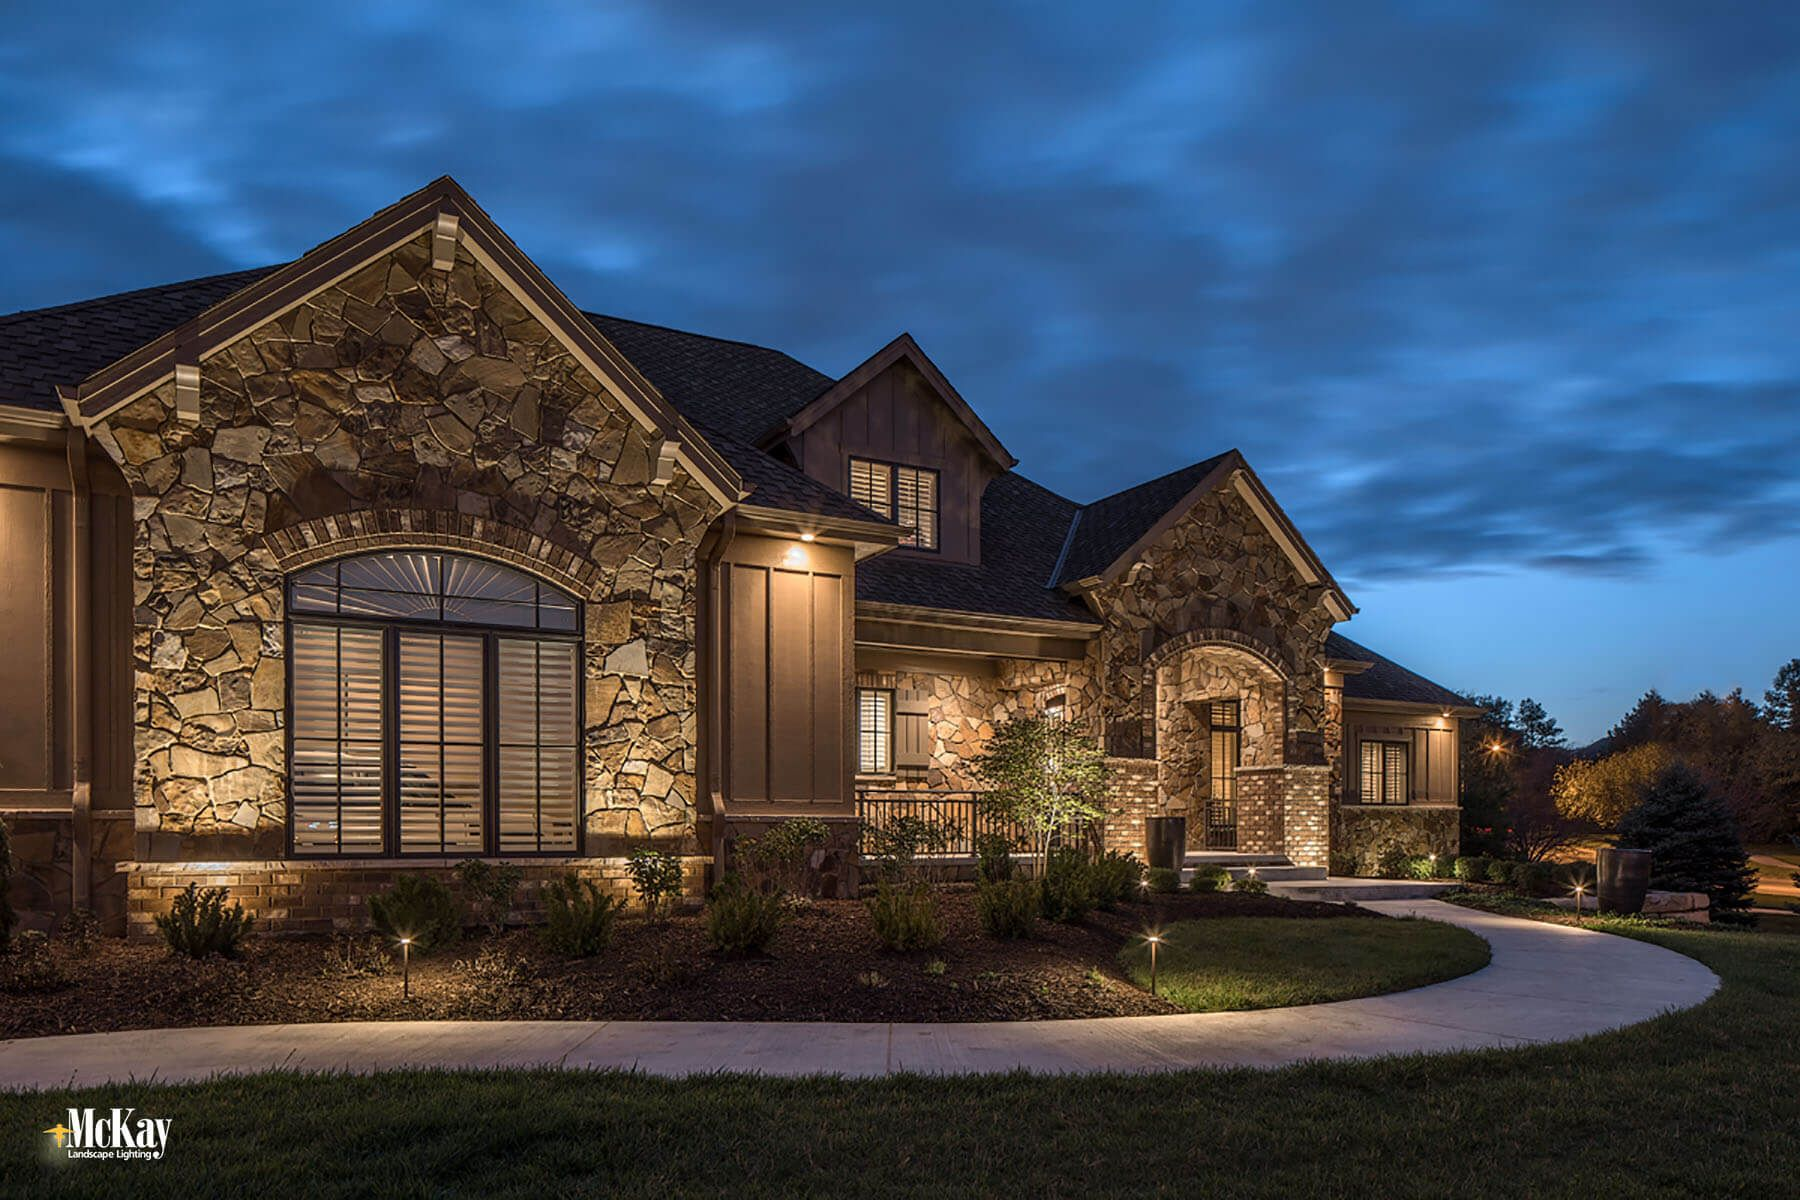 Project spotlight elegant outdoor security lighting design residential security lighting omaha nebraska learn more about this outdoor security lighting design by mckay mozeypictures Image collections